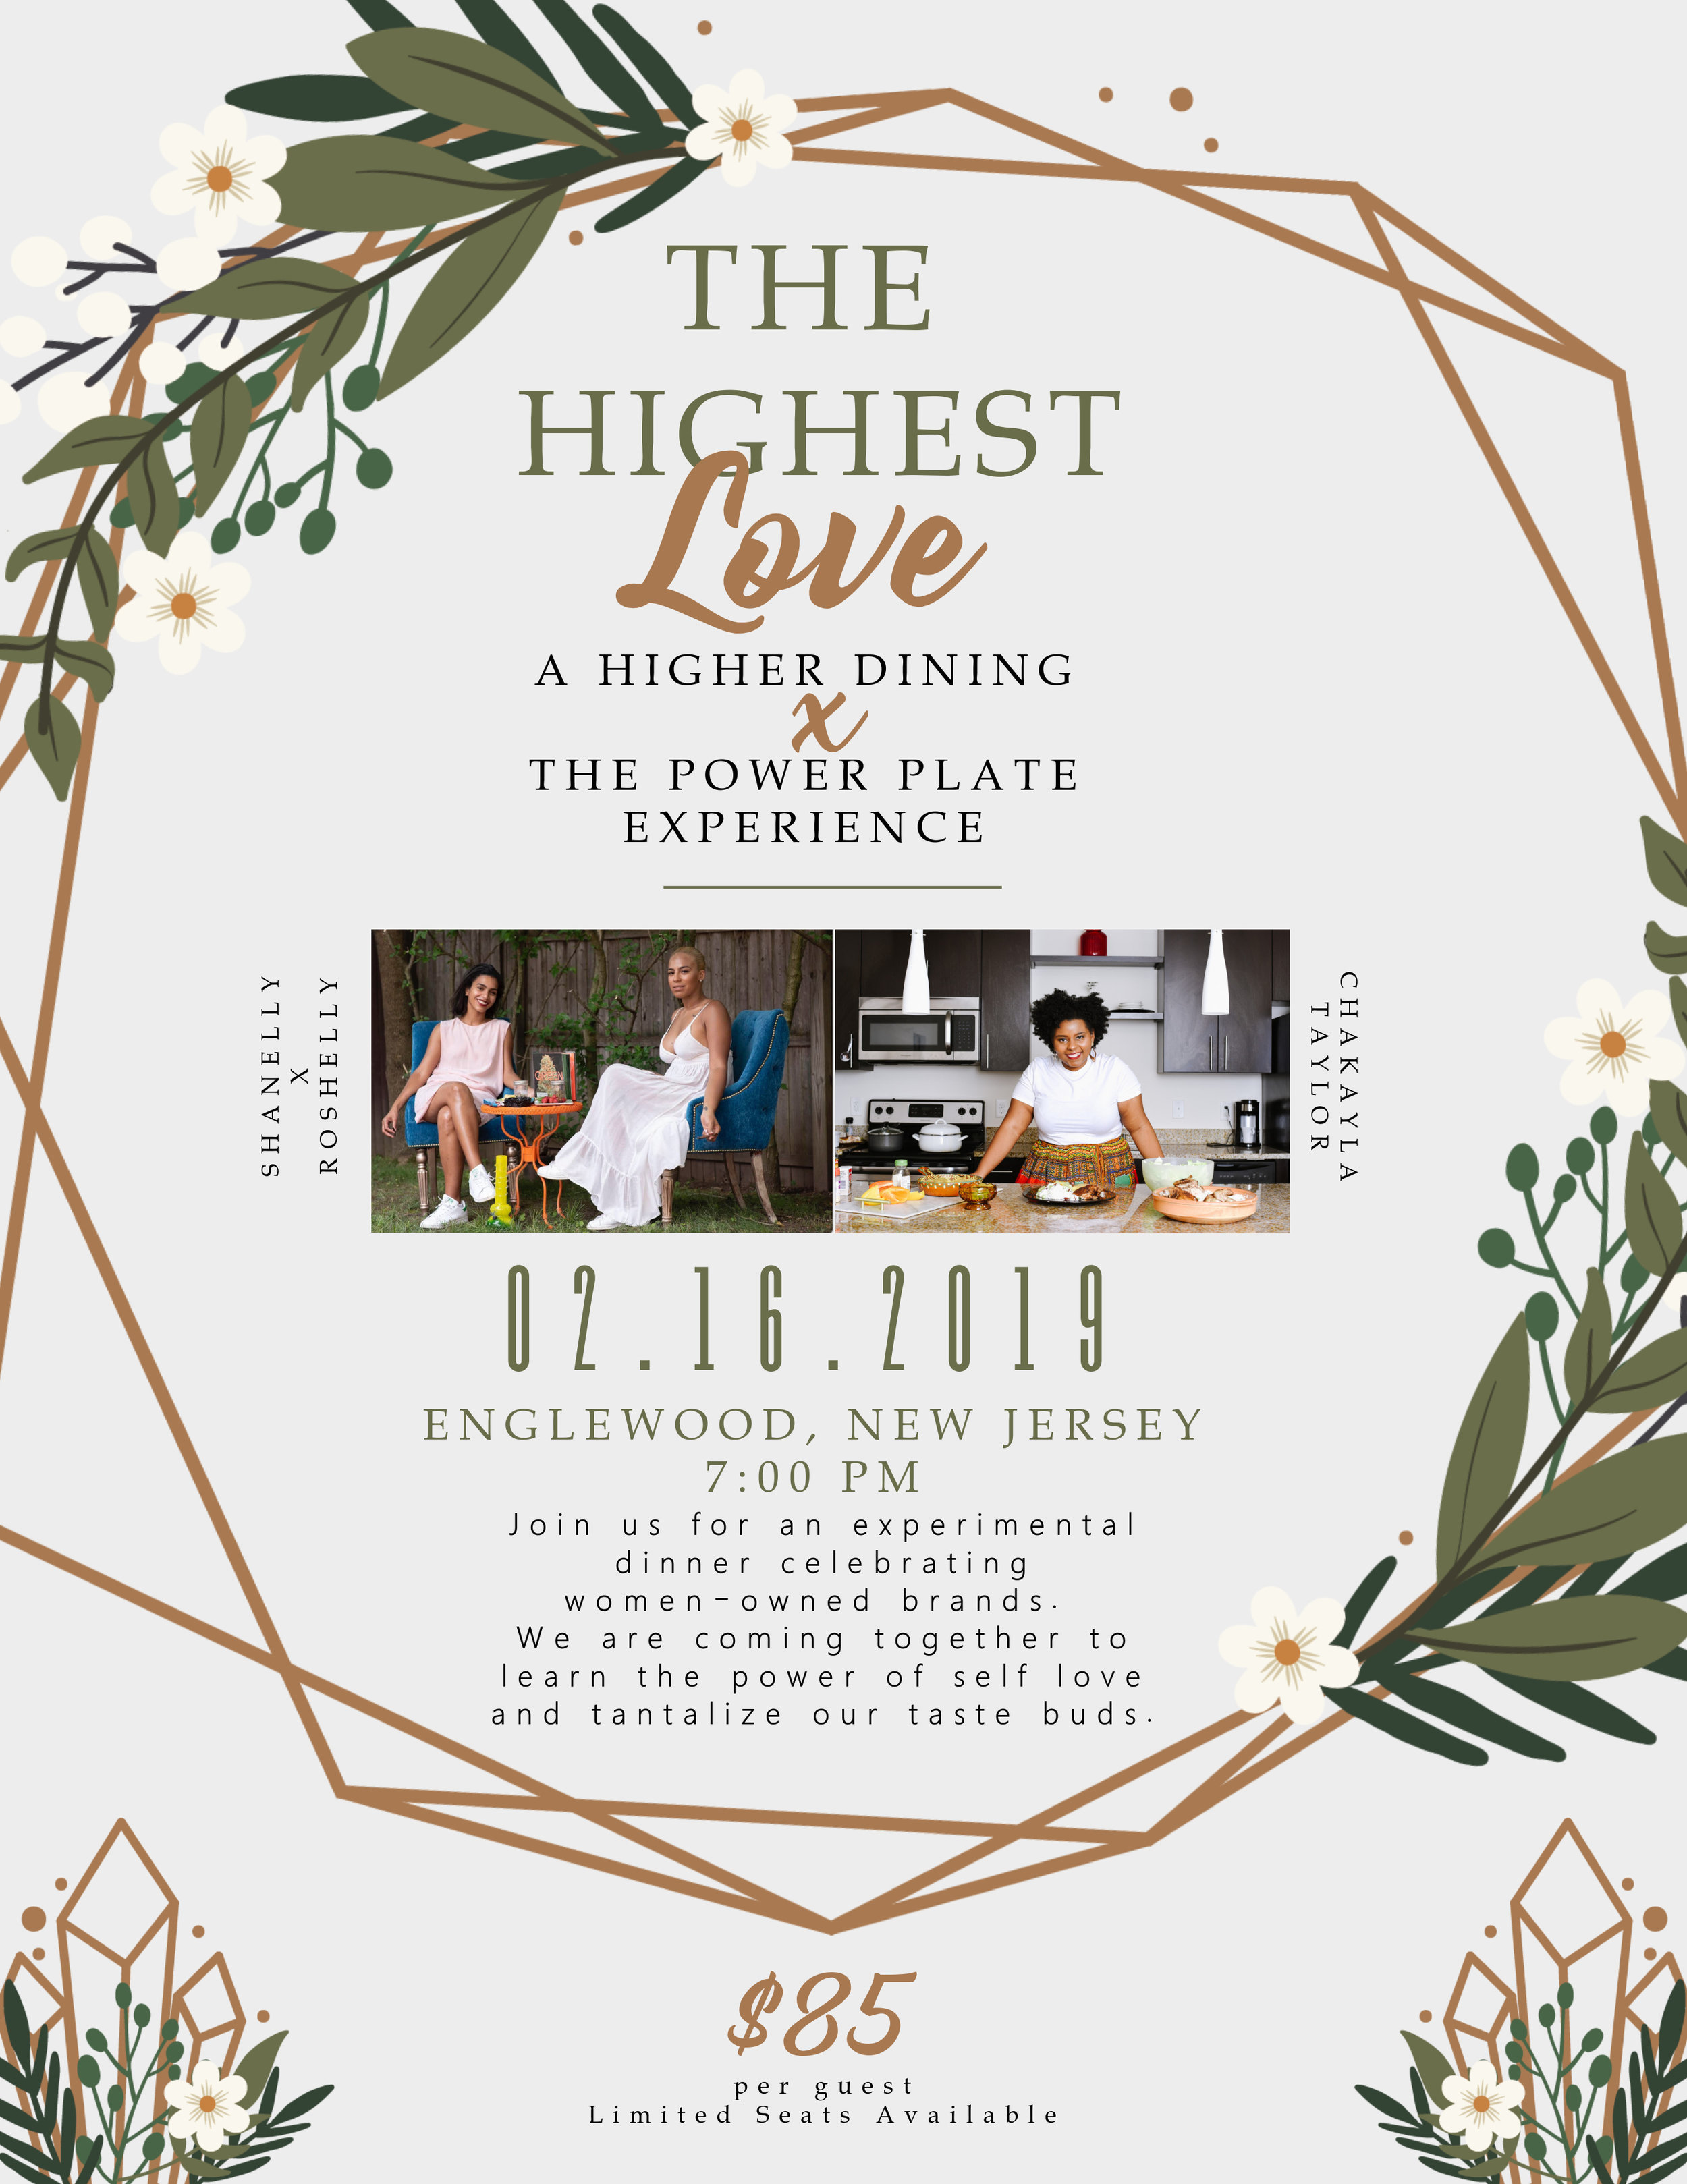 The Highest Love was a collaborative dinner experience hosted by The Power Plate & Higher Dining (NYC). The dinner was hosted in Englewood, New Jersey on February 16, 2019.